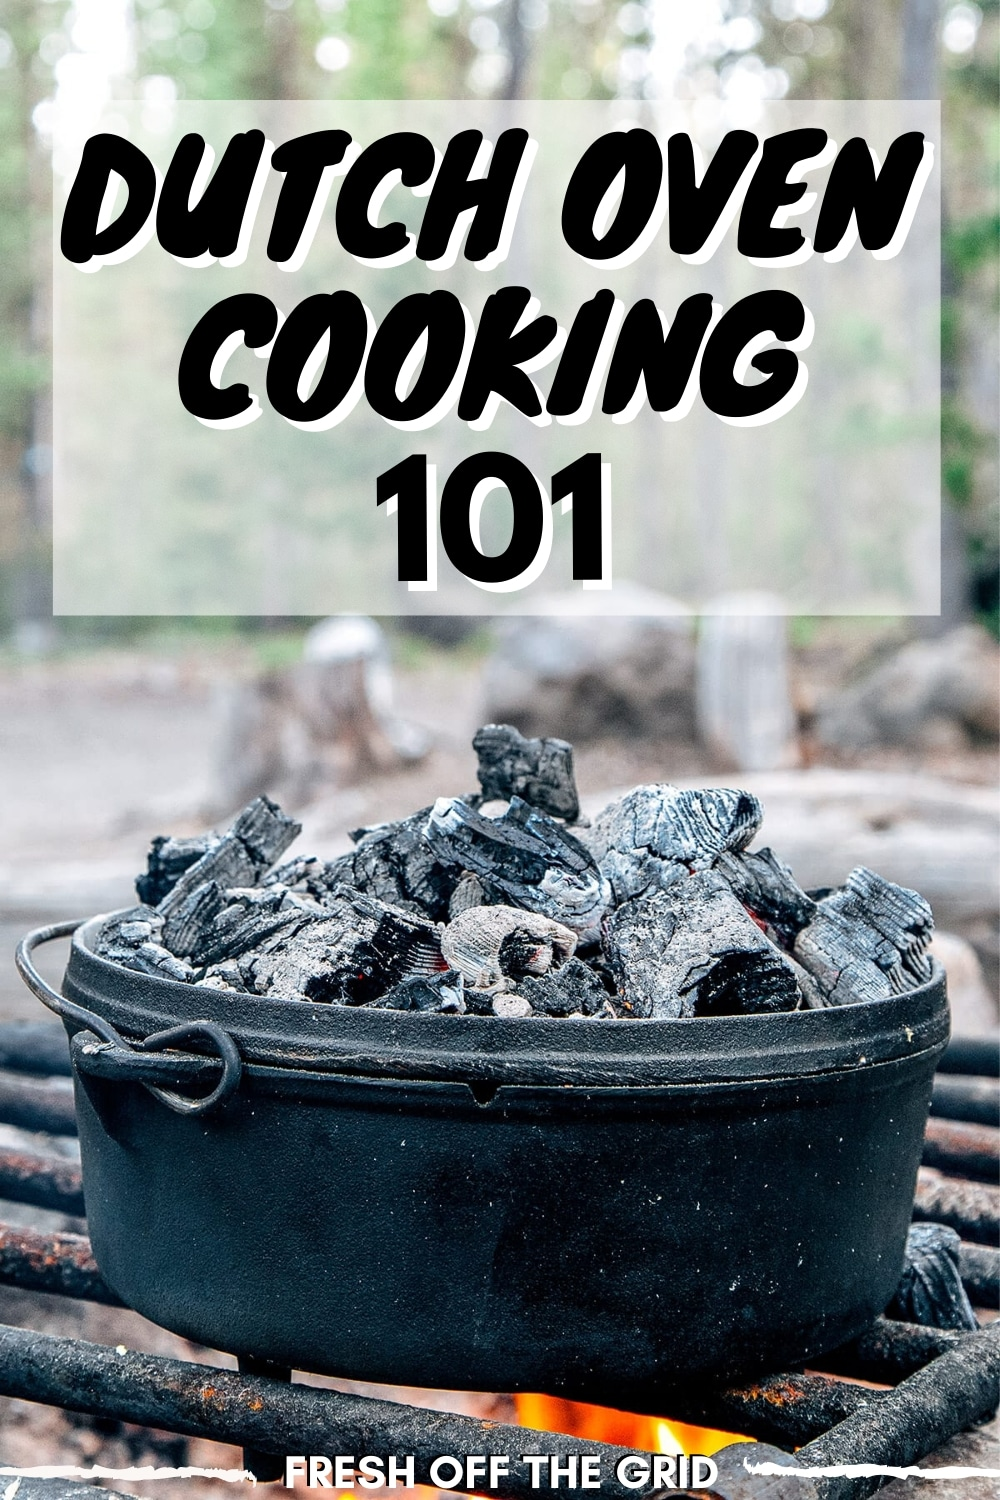 Everything you need to know about Dutch oven cooking! We demystify cooking in a camping Dutch oven in this post: what size you need, temperature, and our favorite Dutch oven recipes! Camp cooking   Camping tips and tricks via @freshoffthegrid